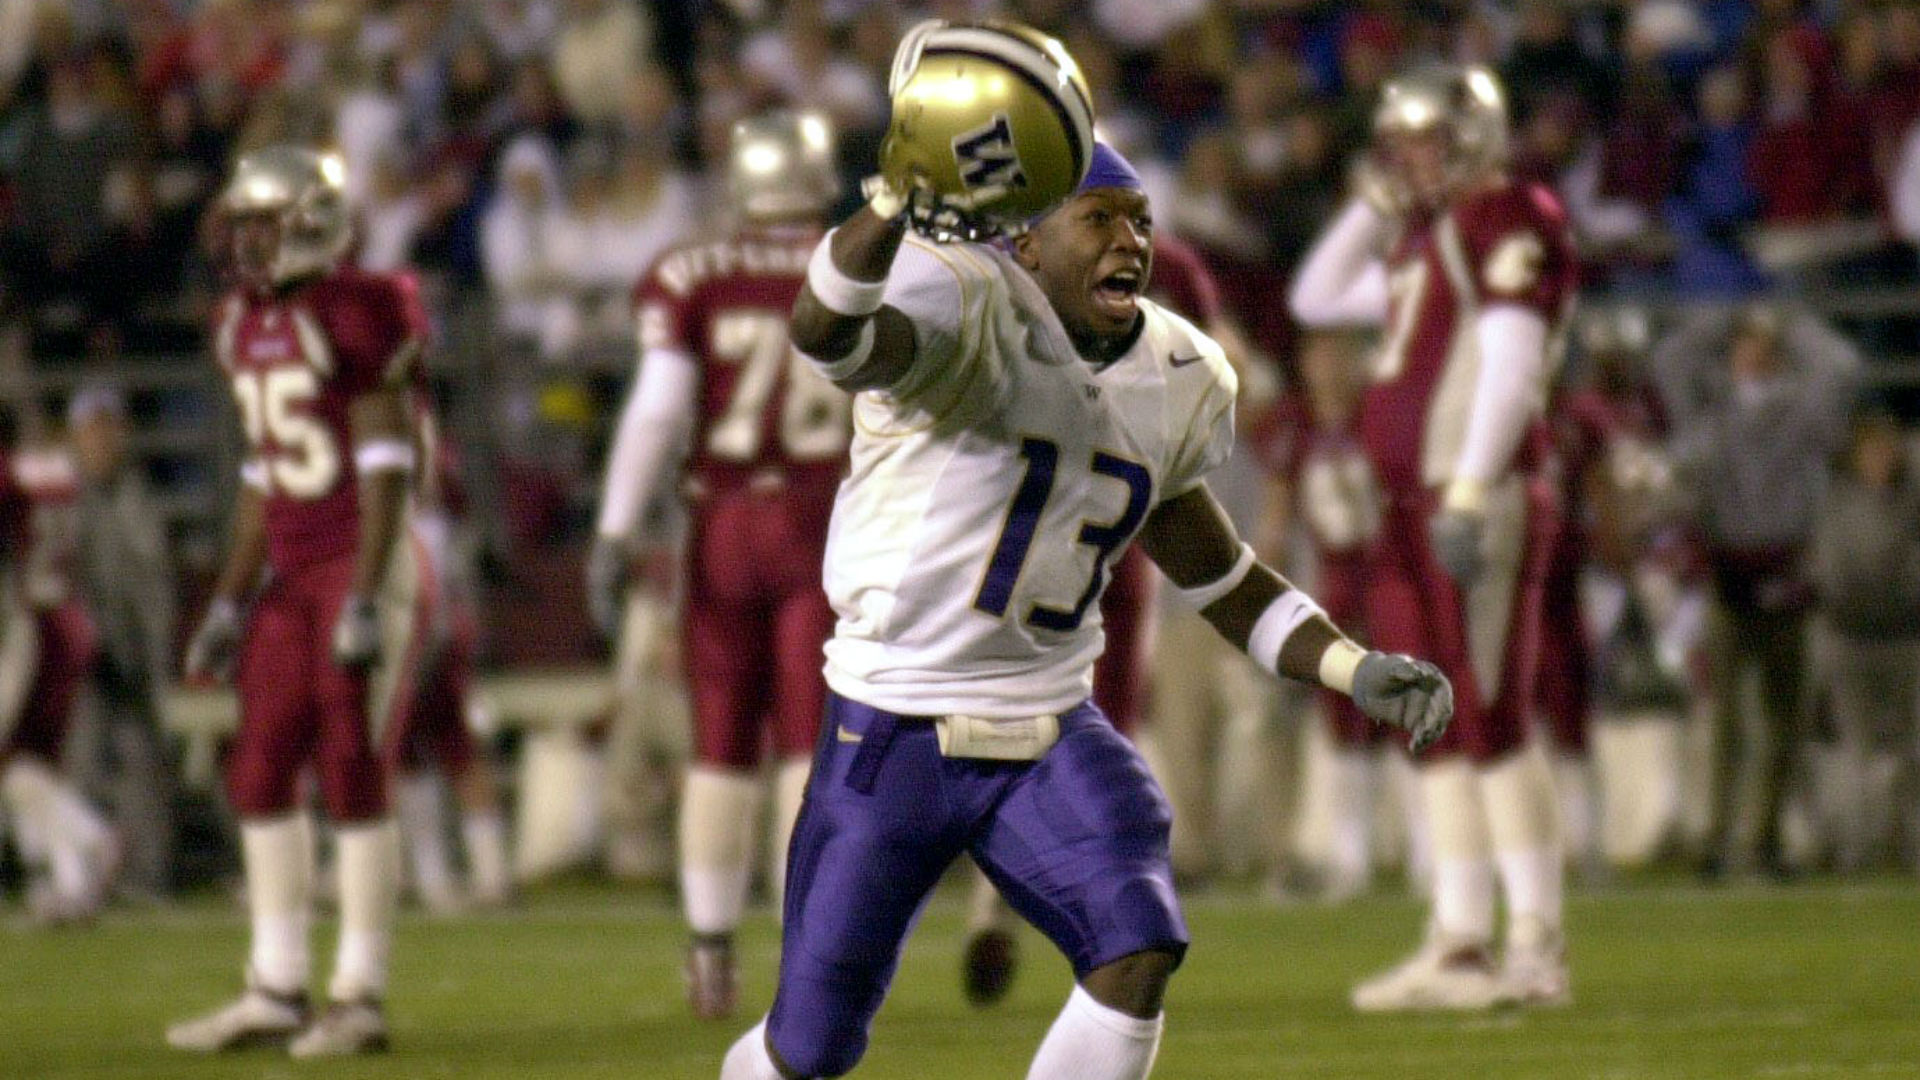 679bed12ff9 Ex-NBA star Nate Robinson hopes to play in NFL